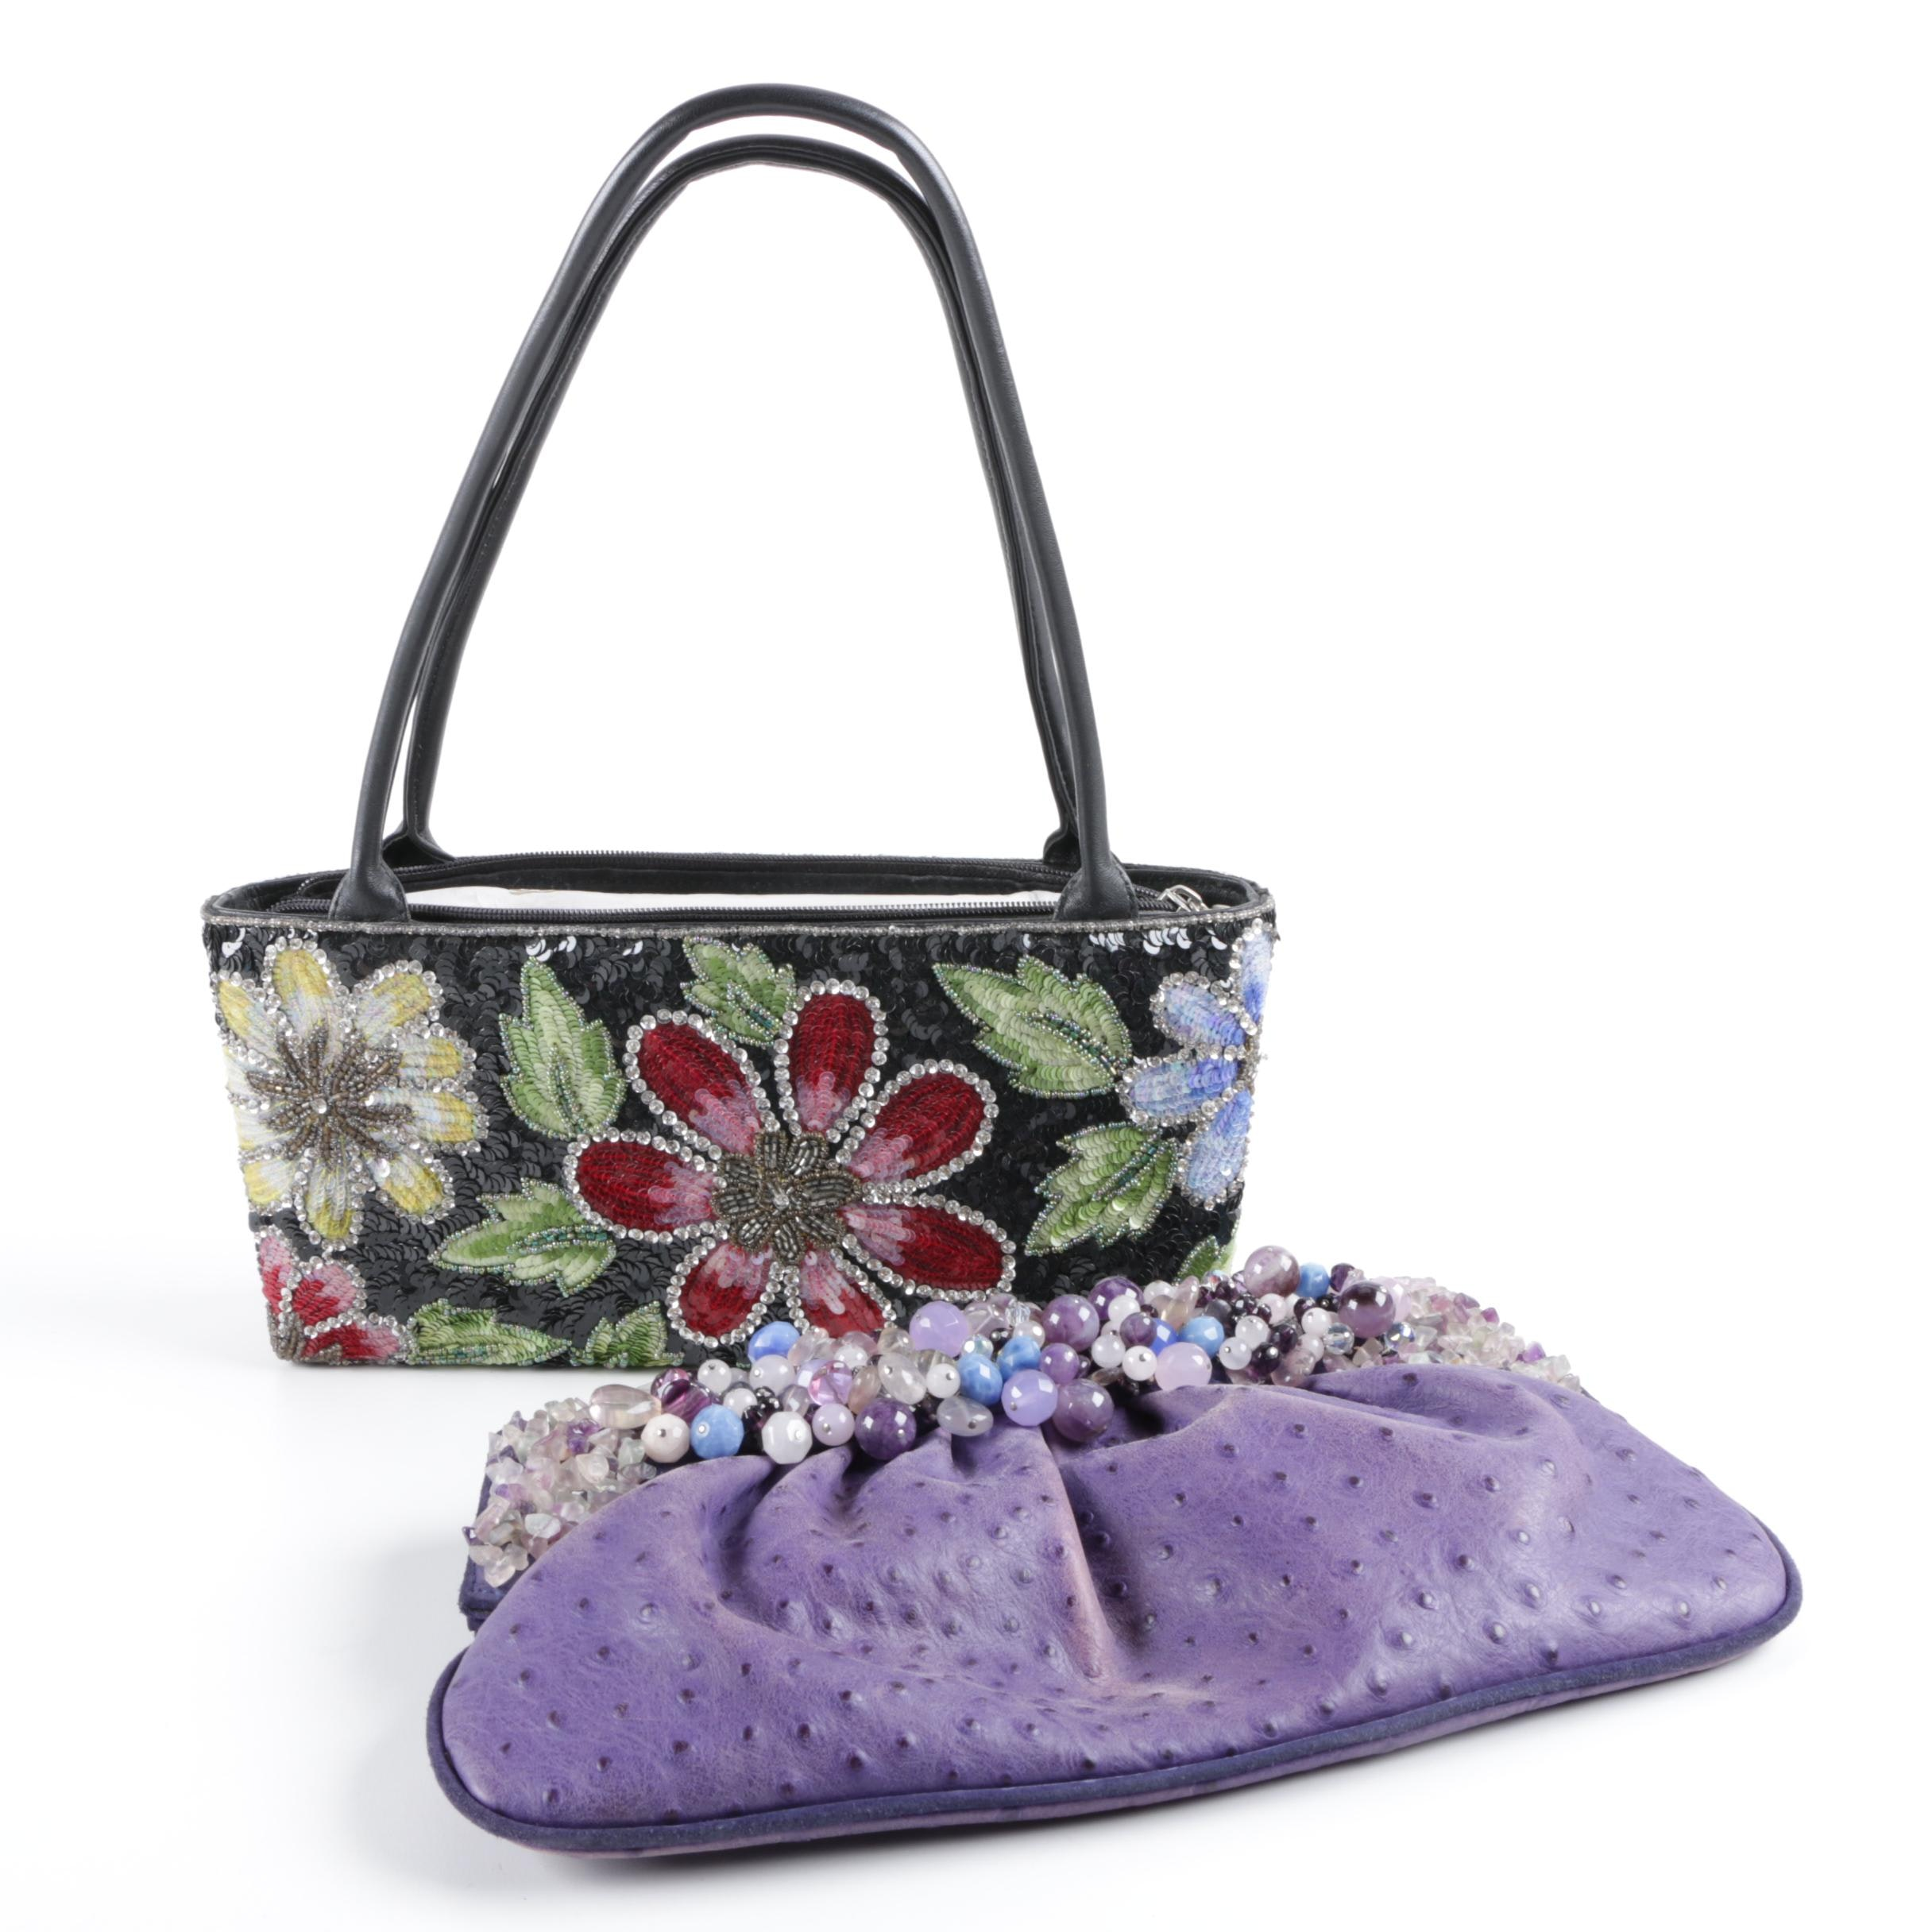 Dyed Ostrich Clutch Embellished with Semi-Precious Stones and Sequined Purse